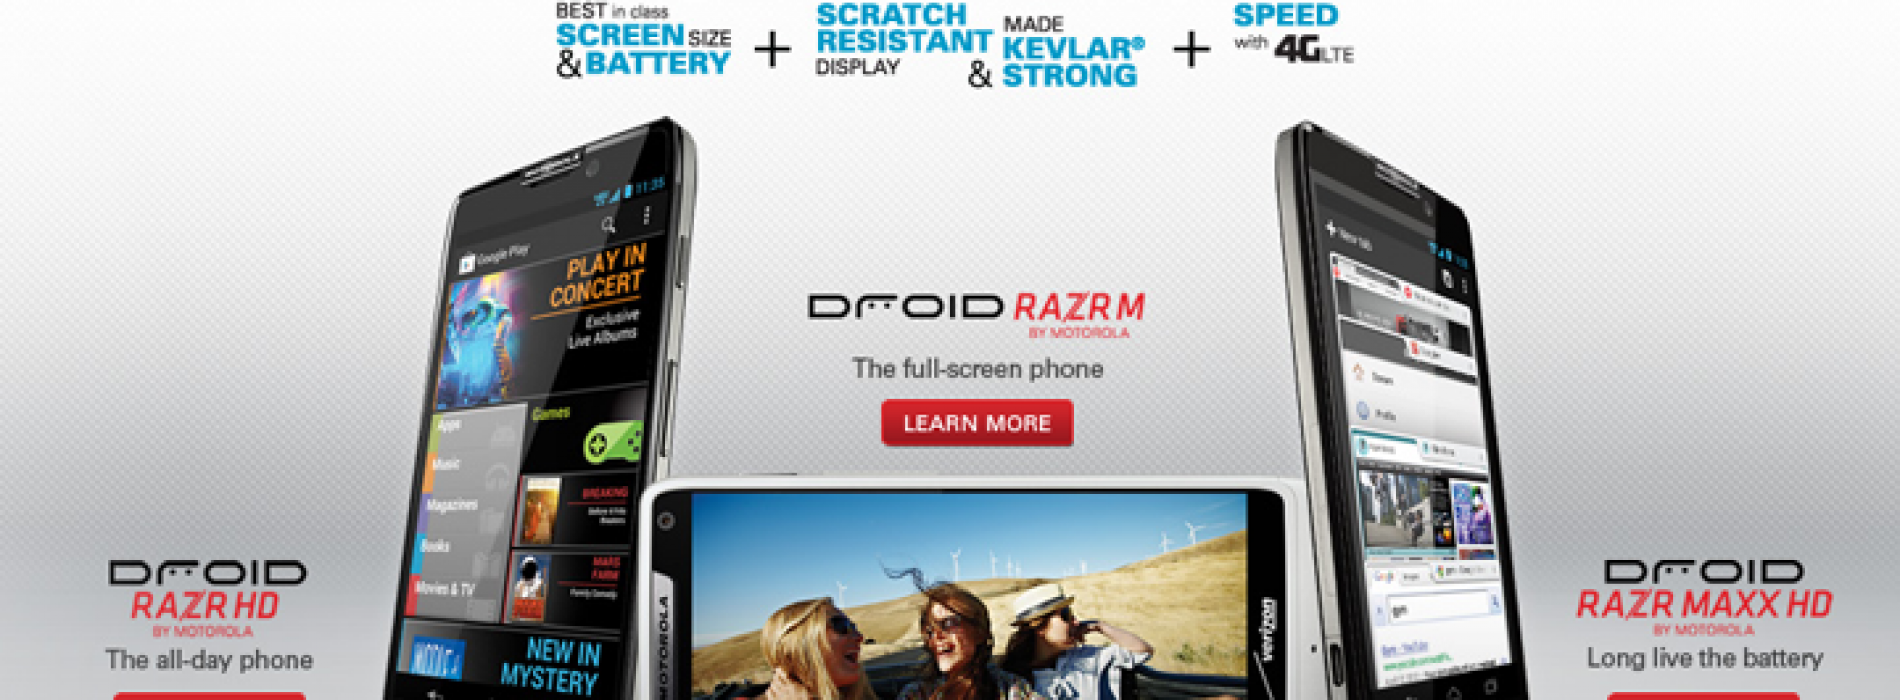 Motorola officially debuts the Droid Razr HD, Droid Razr Maxx HD